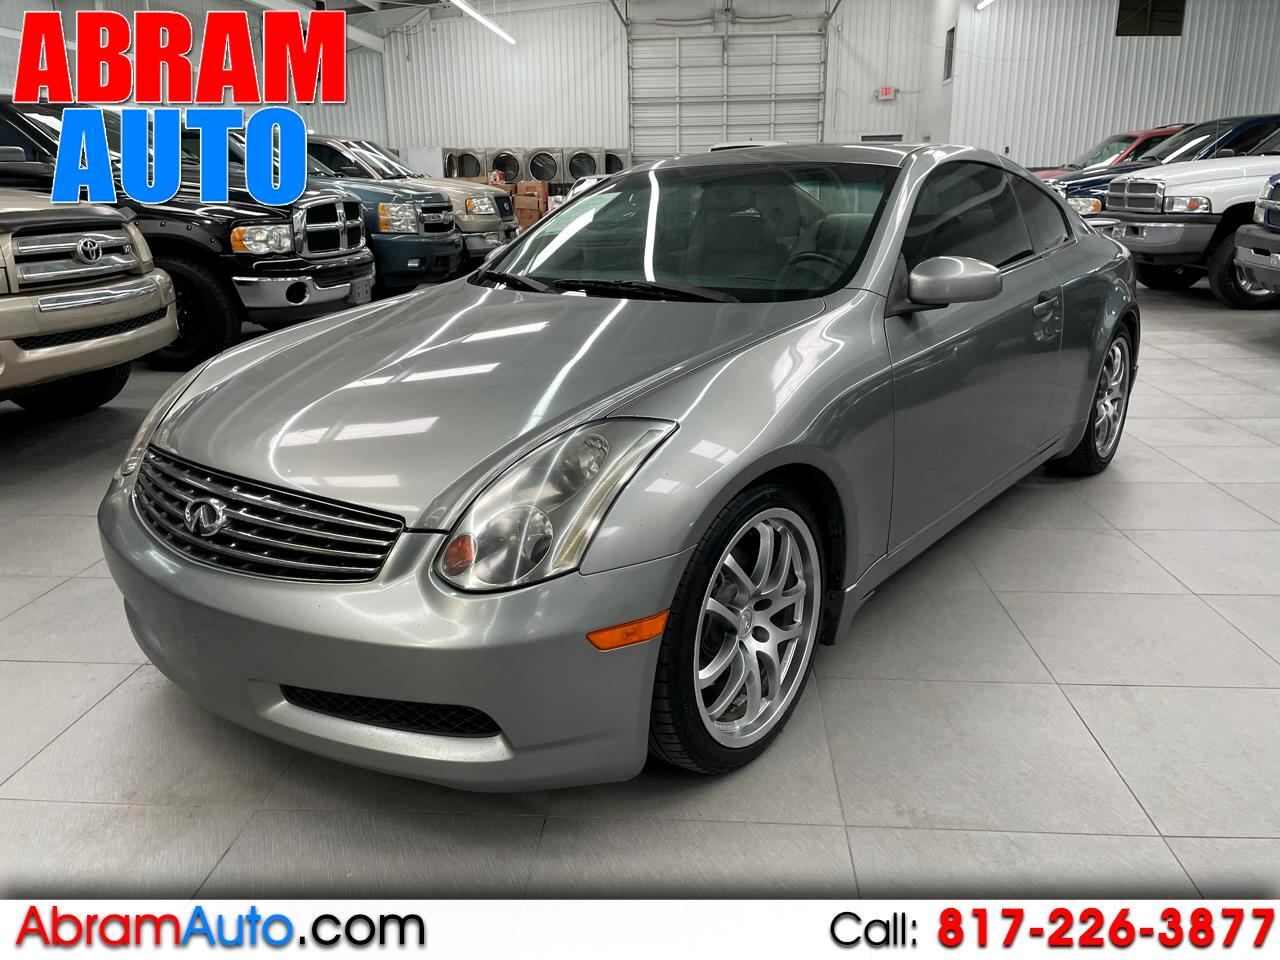 Infiniti G35 Coupe 2dr Cpe Auto w/Leather 2005